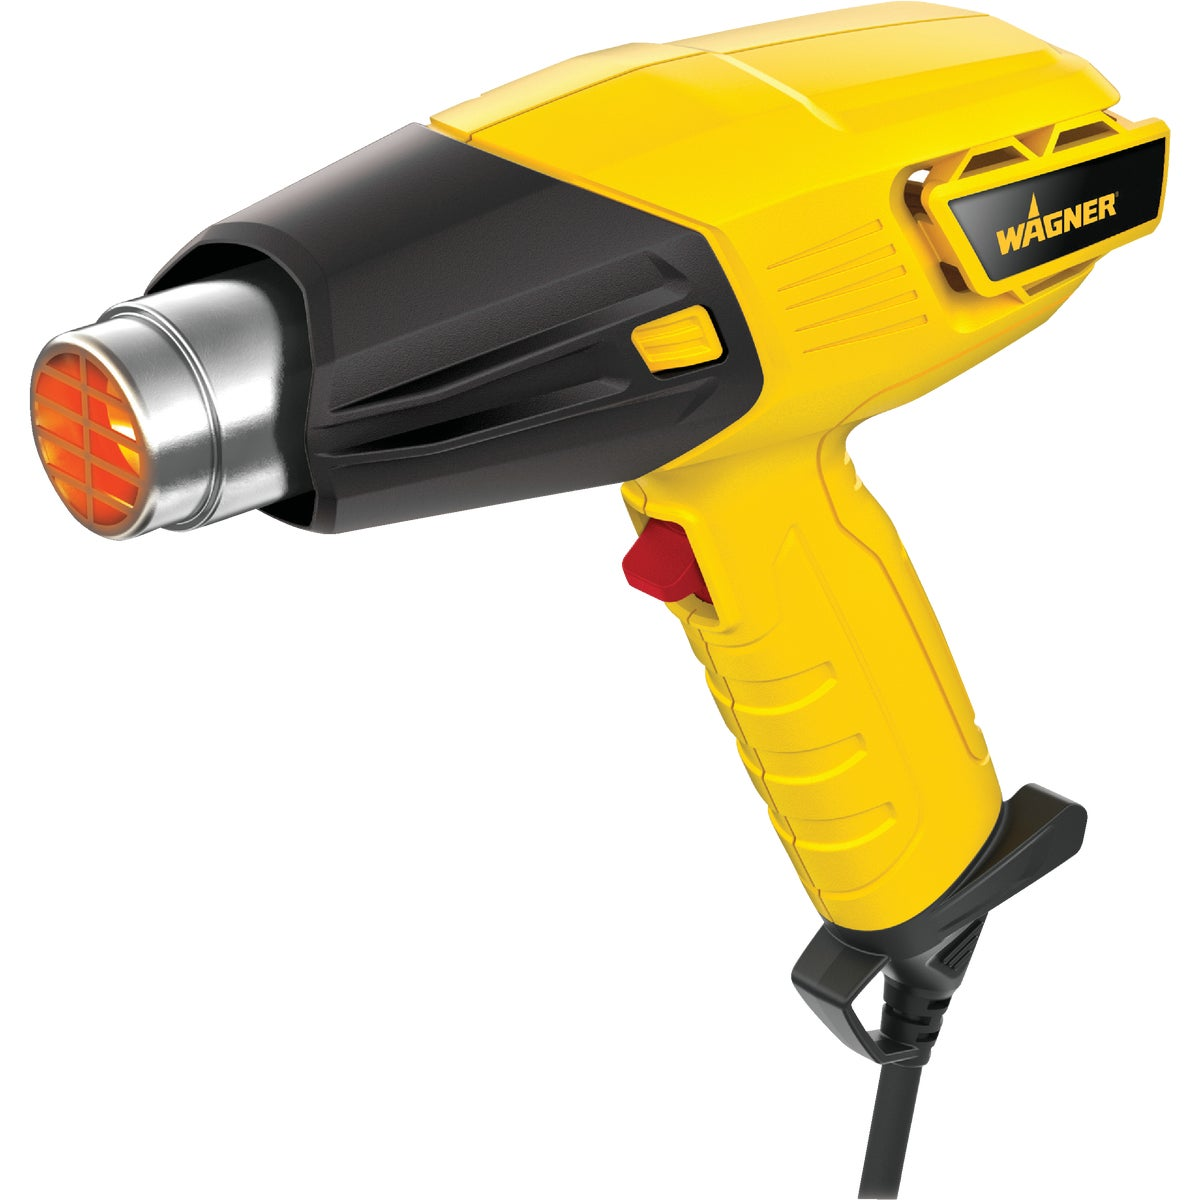 DUAL-TEMP HEAT GUN - HT1000 by Wagner Spray Tech